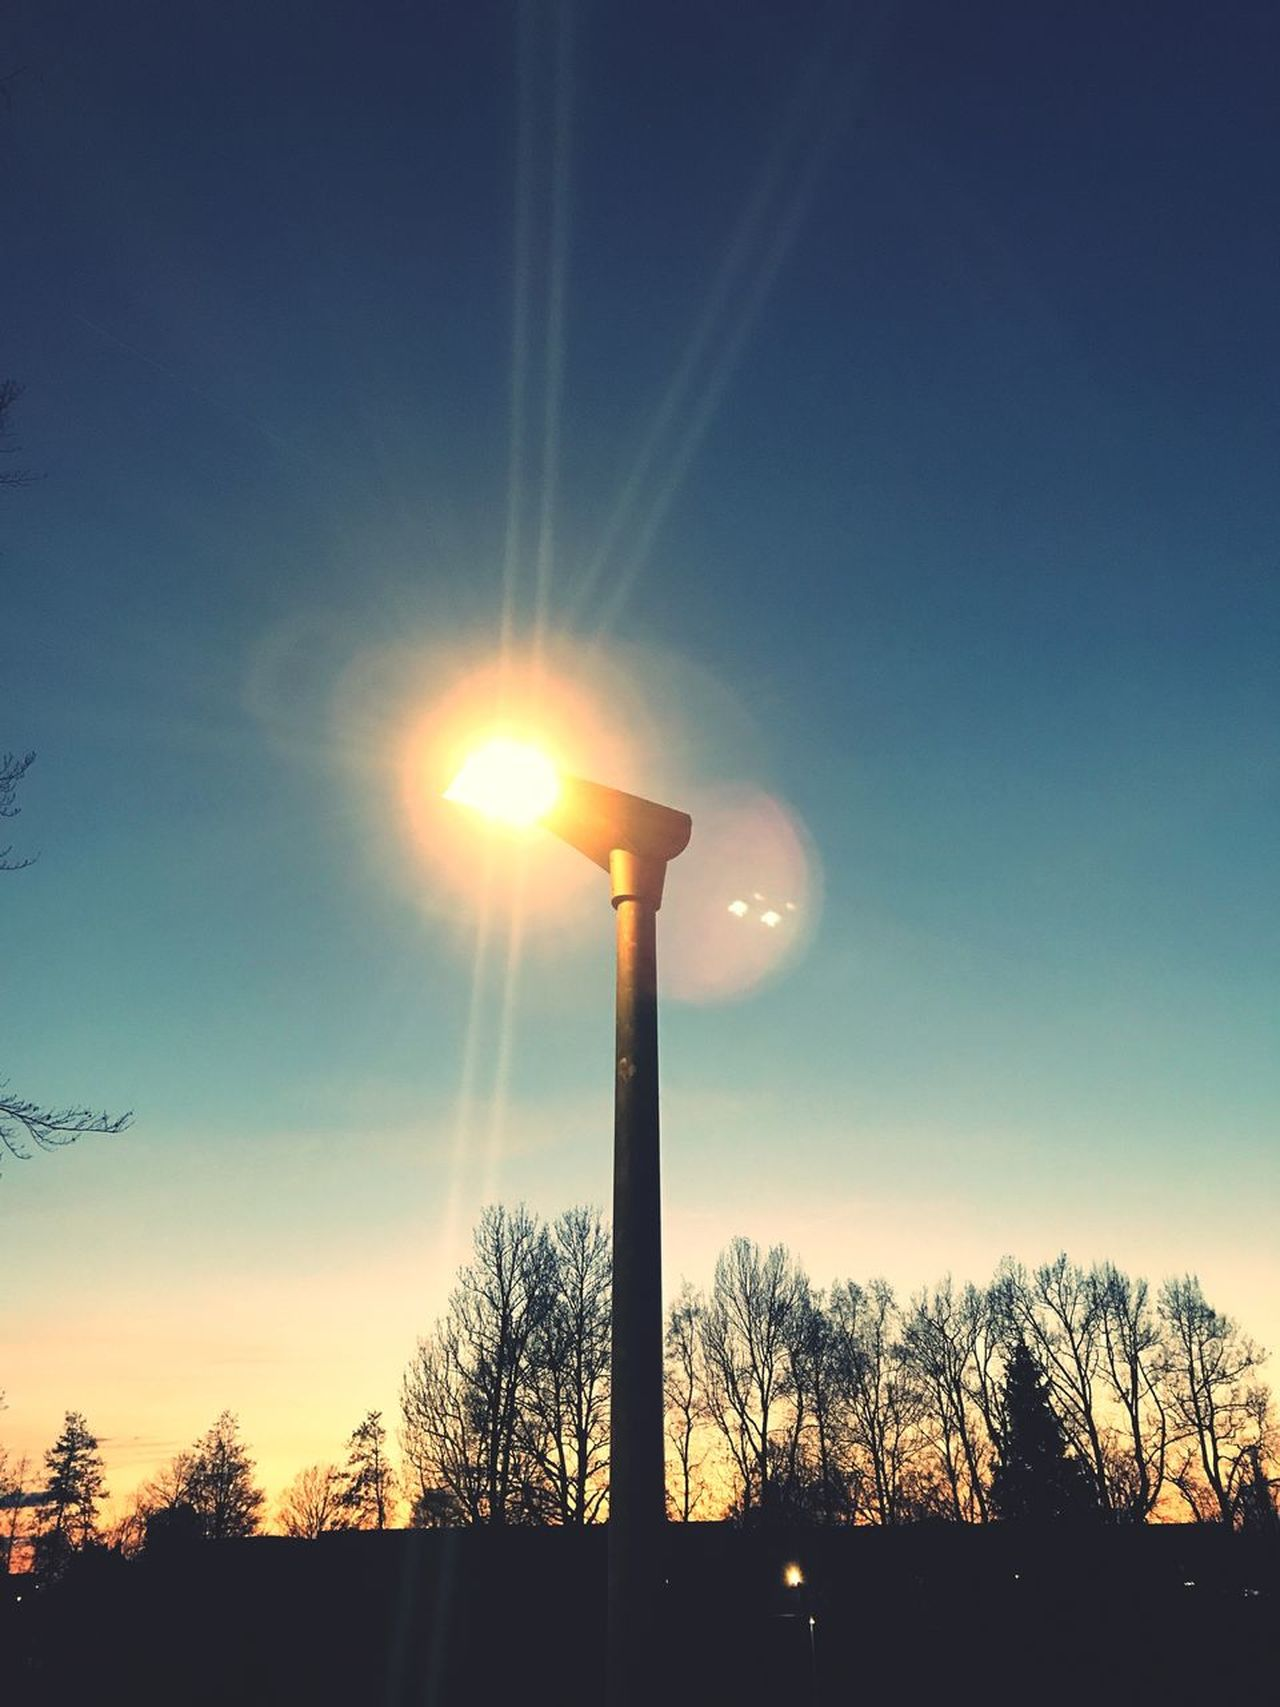 Silhouette Sunset Sky Lighting Equipment Street Light Illuminated Sun Low Angle View Nature Tree Outdoors Fuel And Power Generation No People Sunlight Blue Beauty In Nature Scenics Moon Clear Sky Day